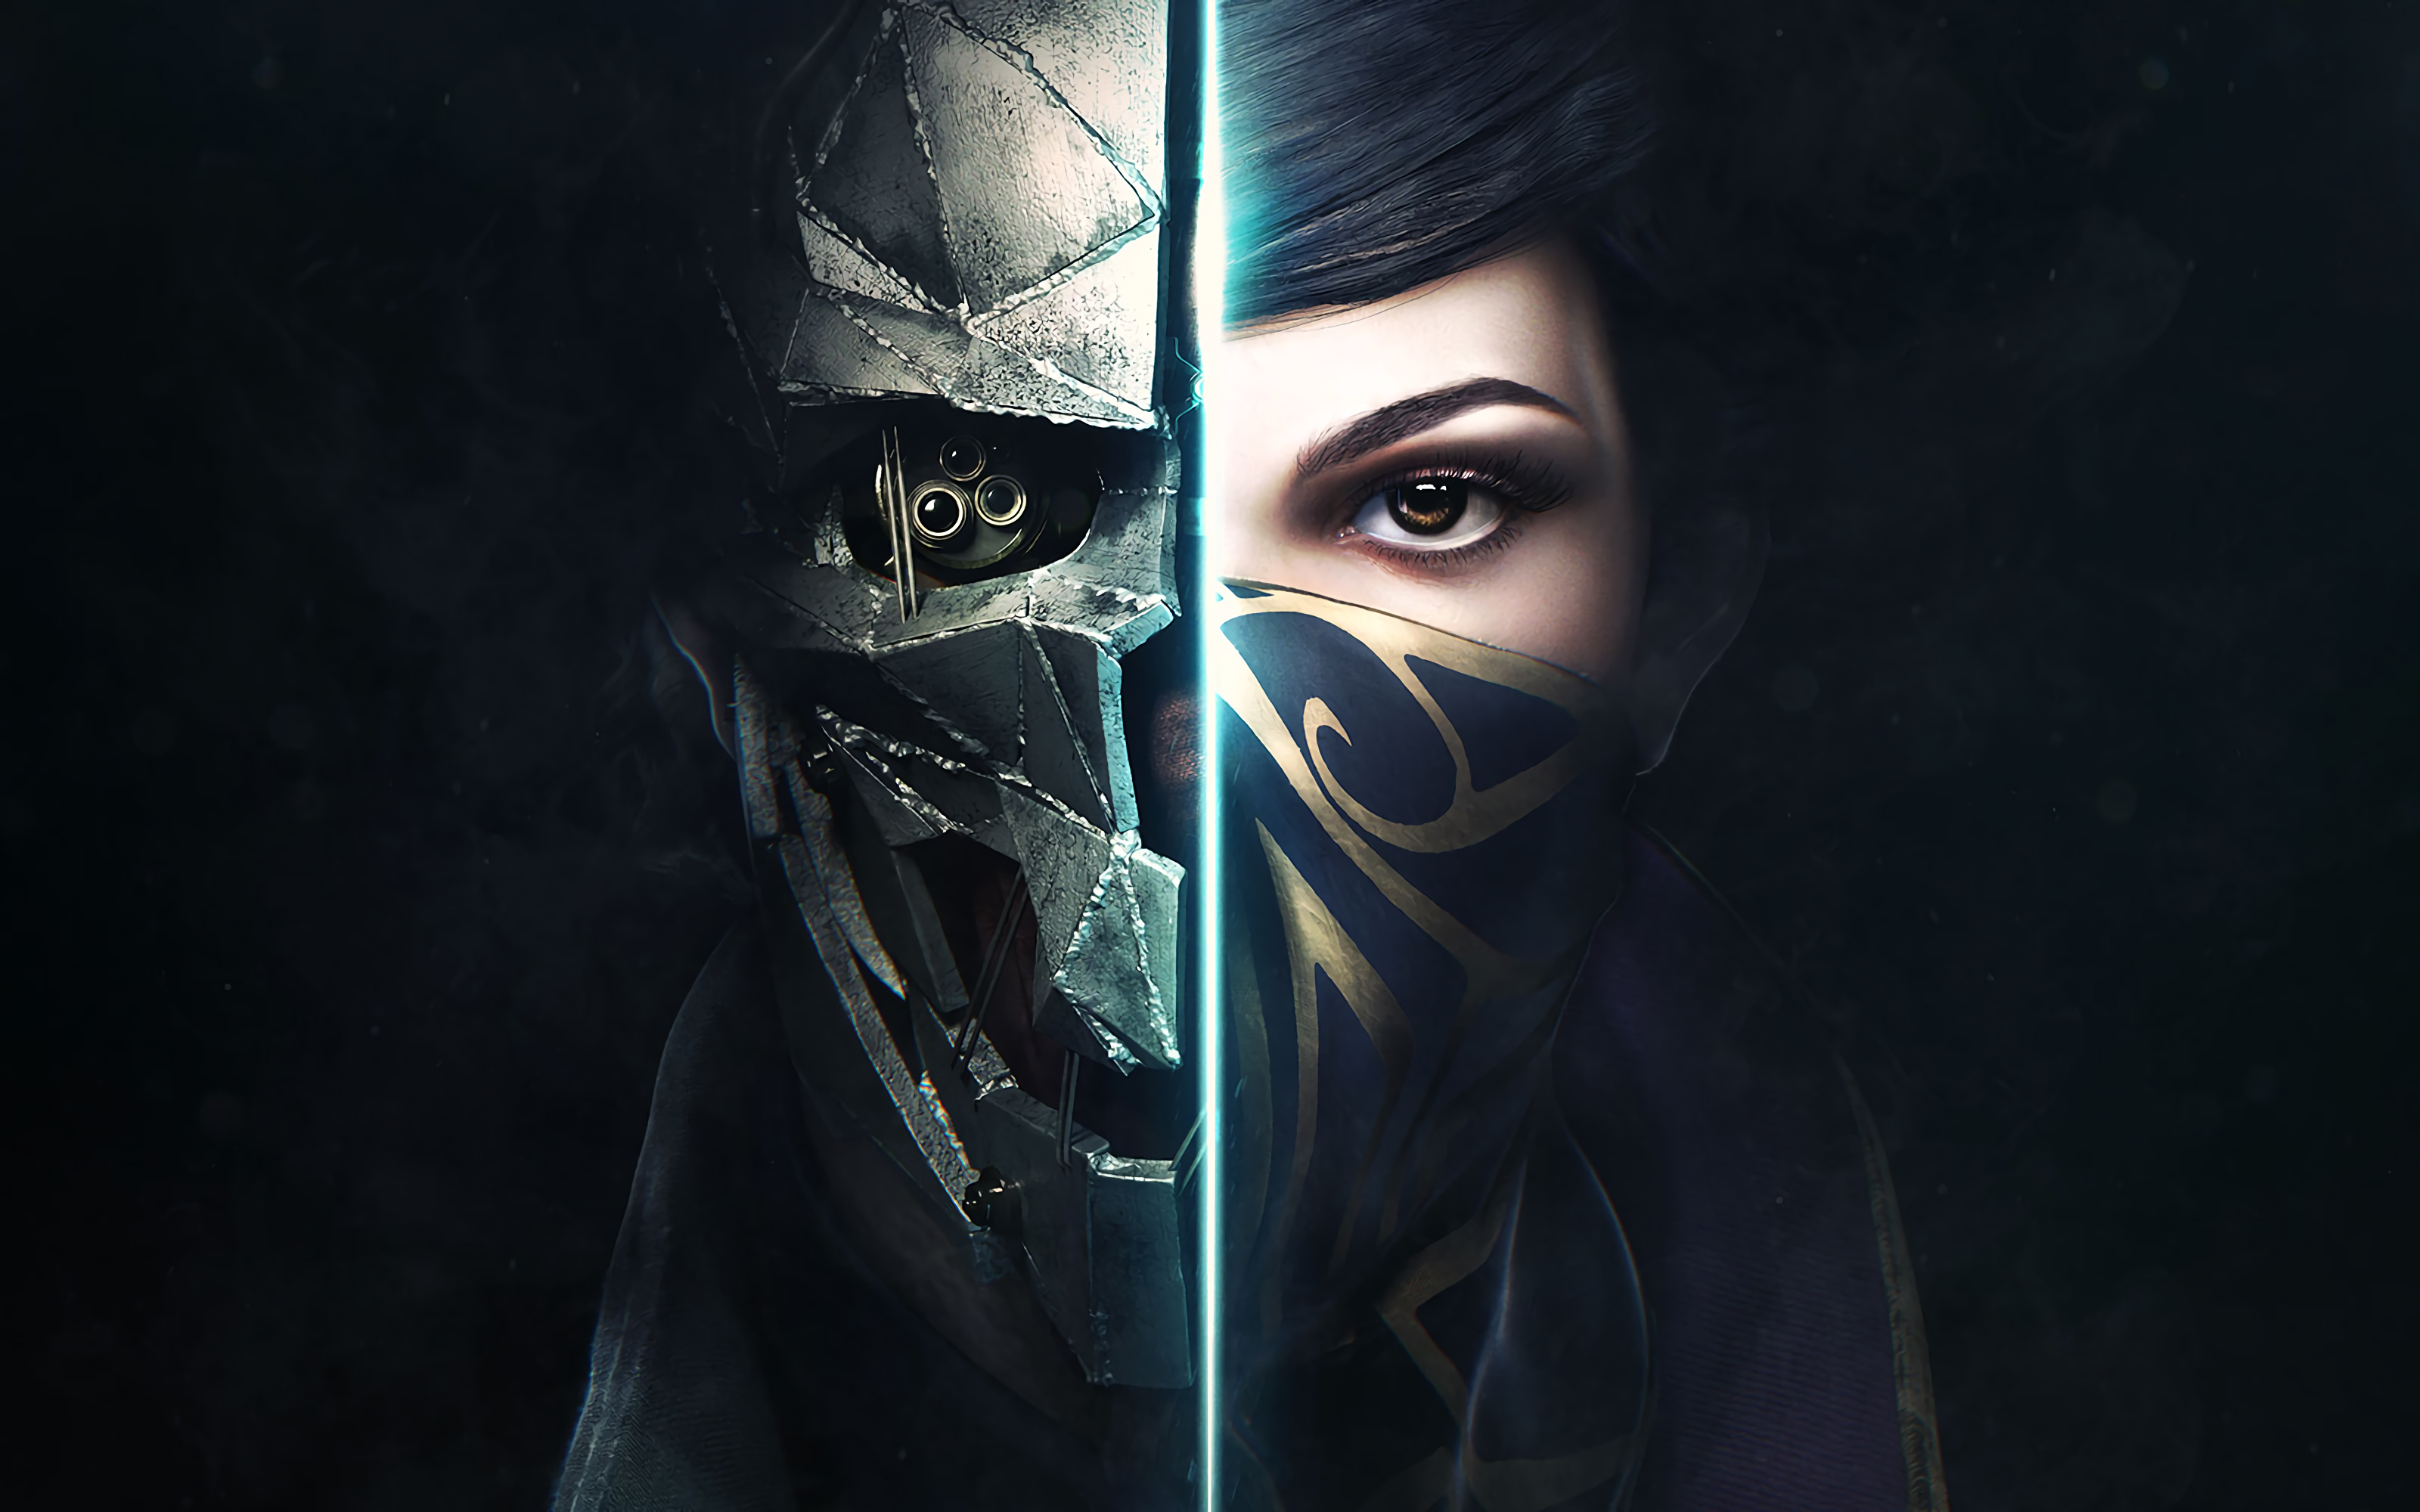 dishonored wallpapers photos and desktop backgrounds up